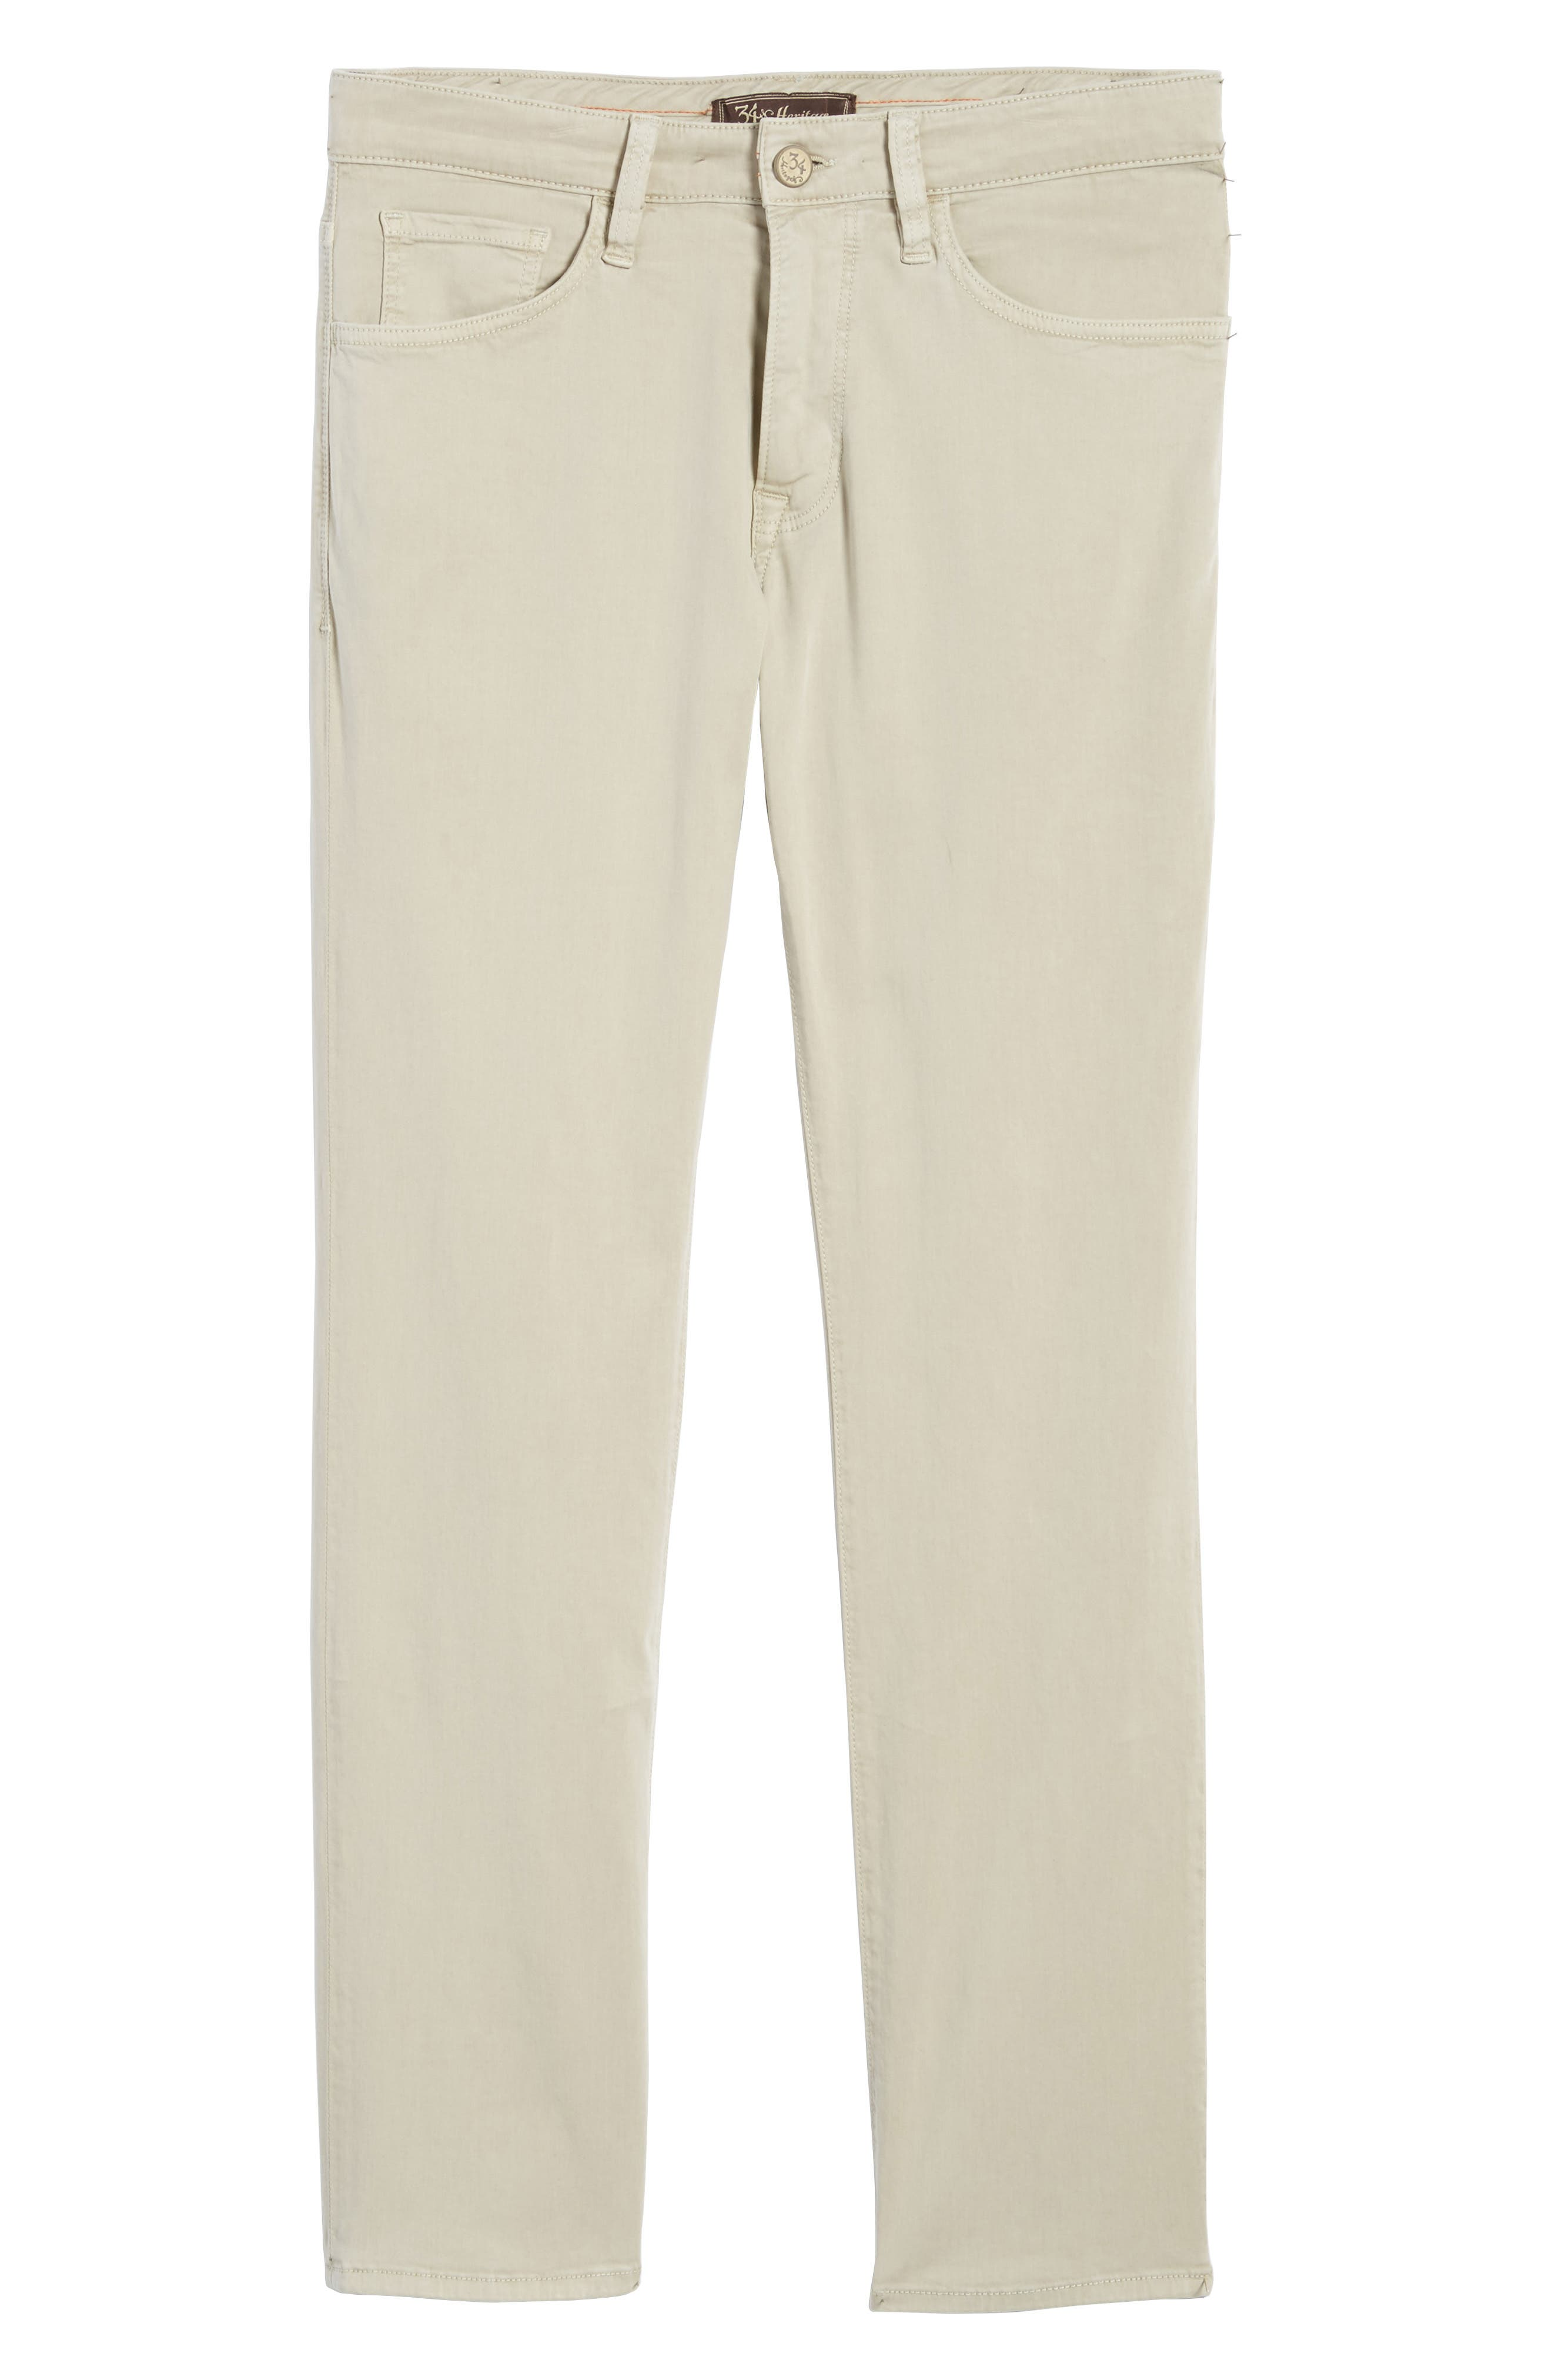 Courage Straight Leg Jeans,                             Alternate thumbnail 6, color,                             Stone Twill